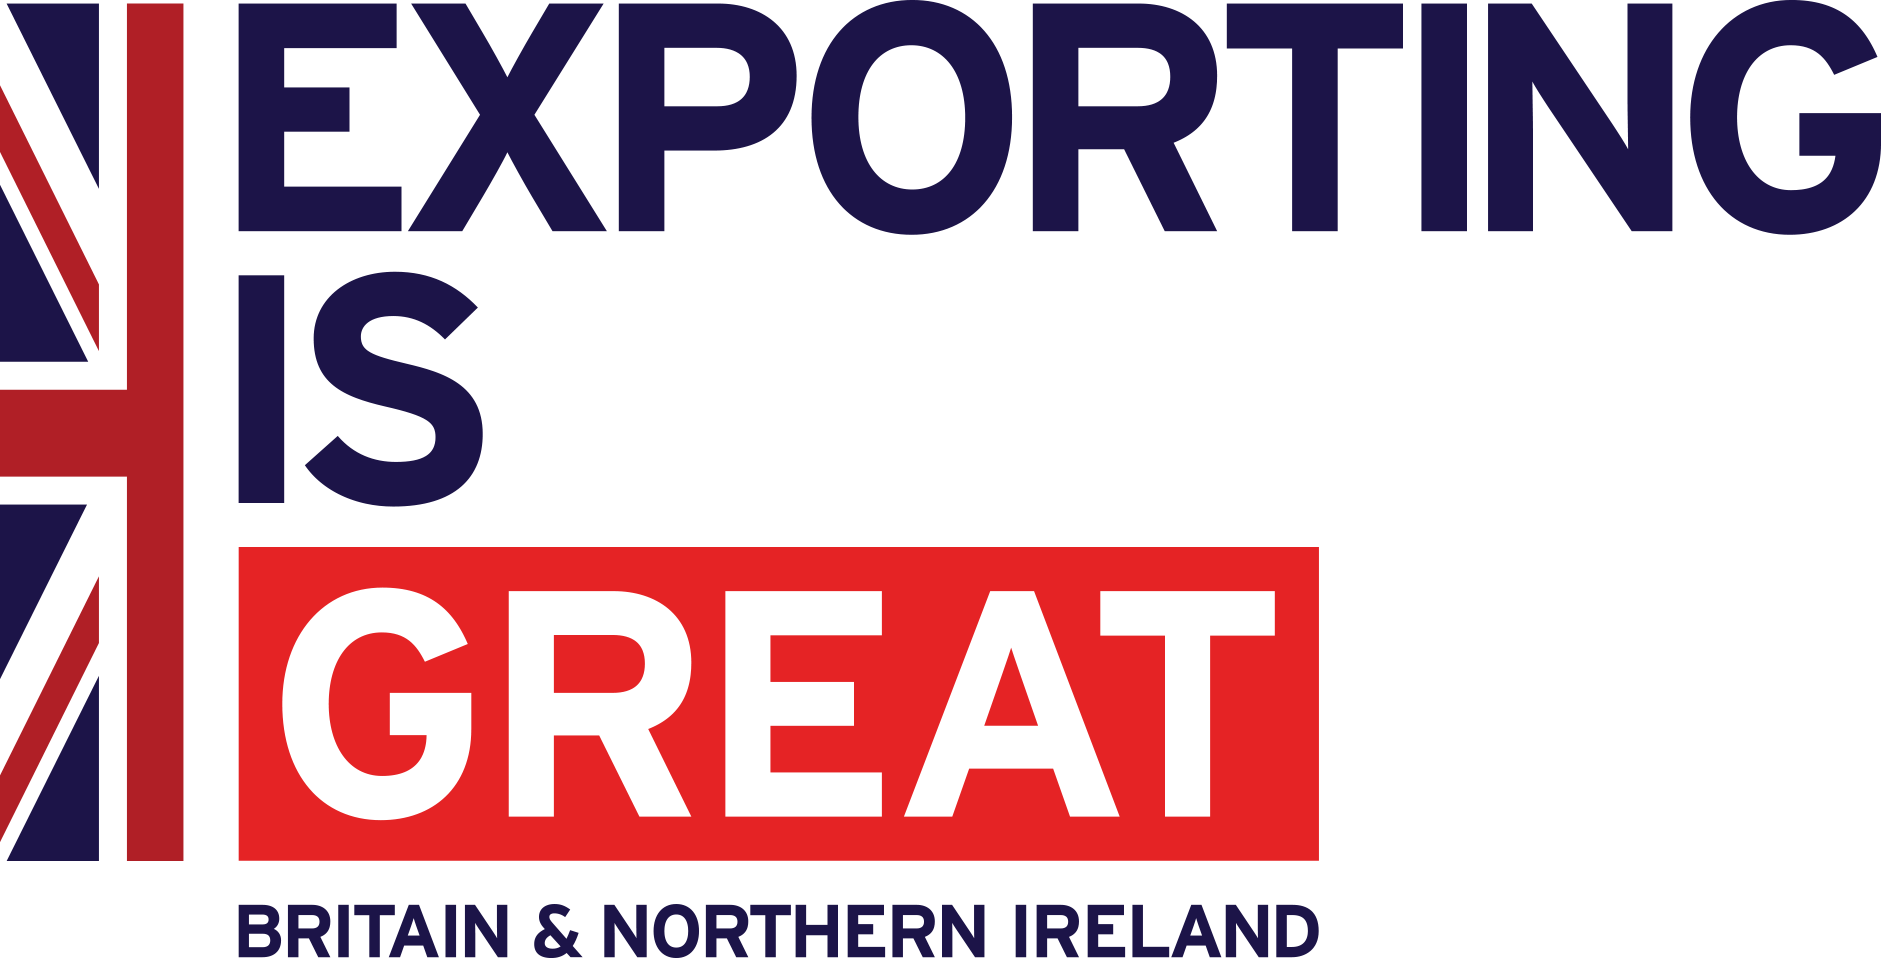 Exporting Is Great says SP Services